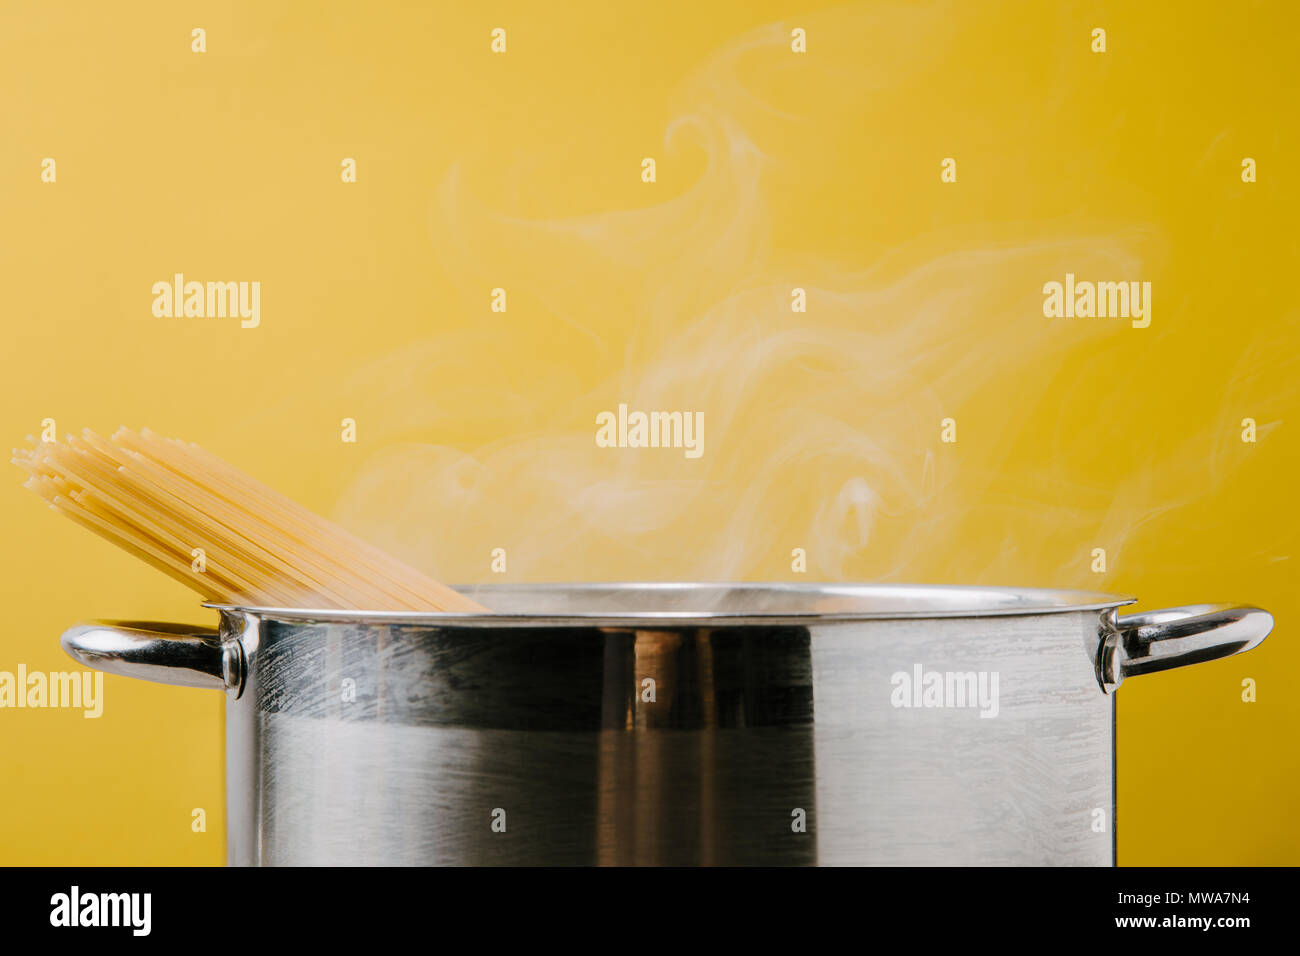 delicious spaghetti boiling in stewpot isolated on yellow - Stock Image